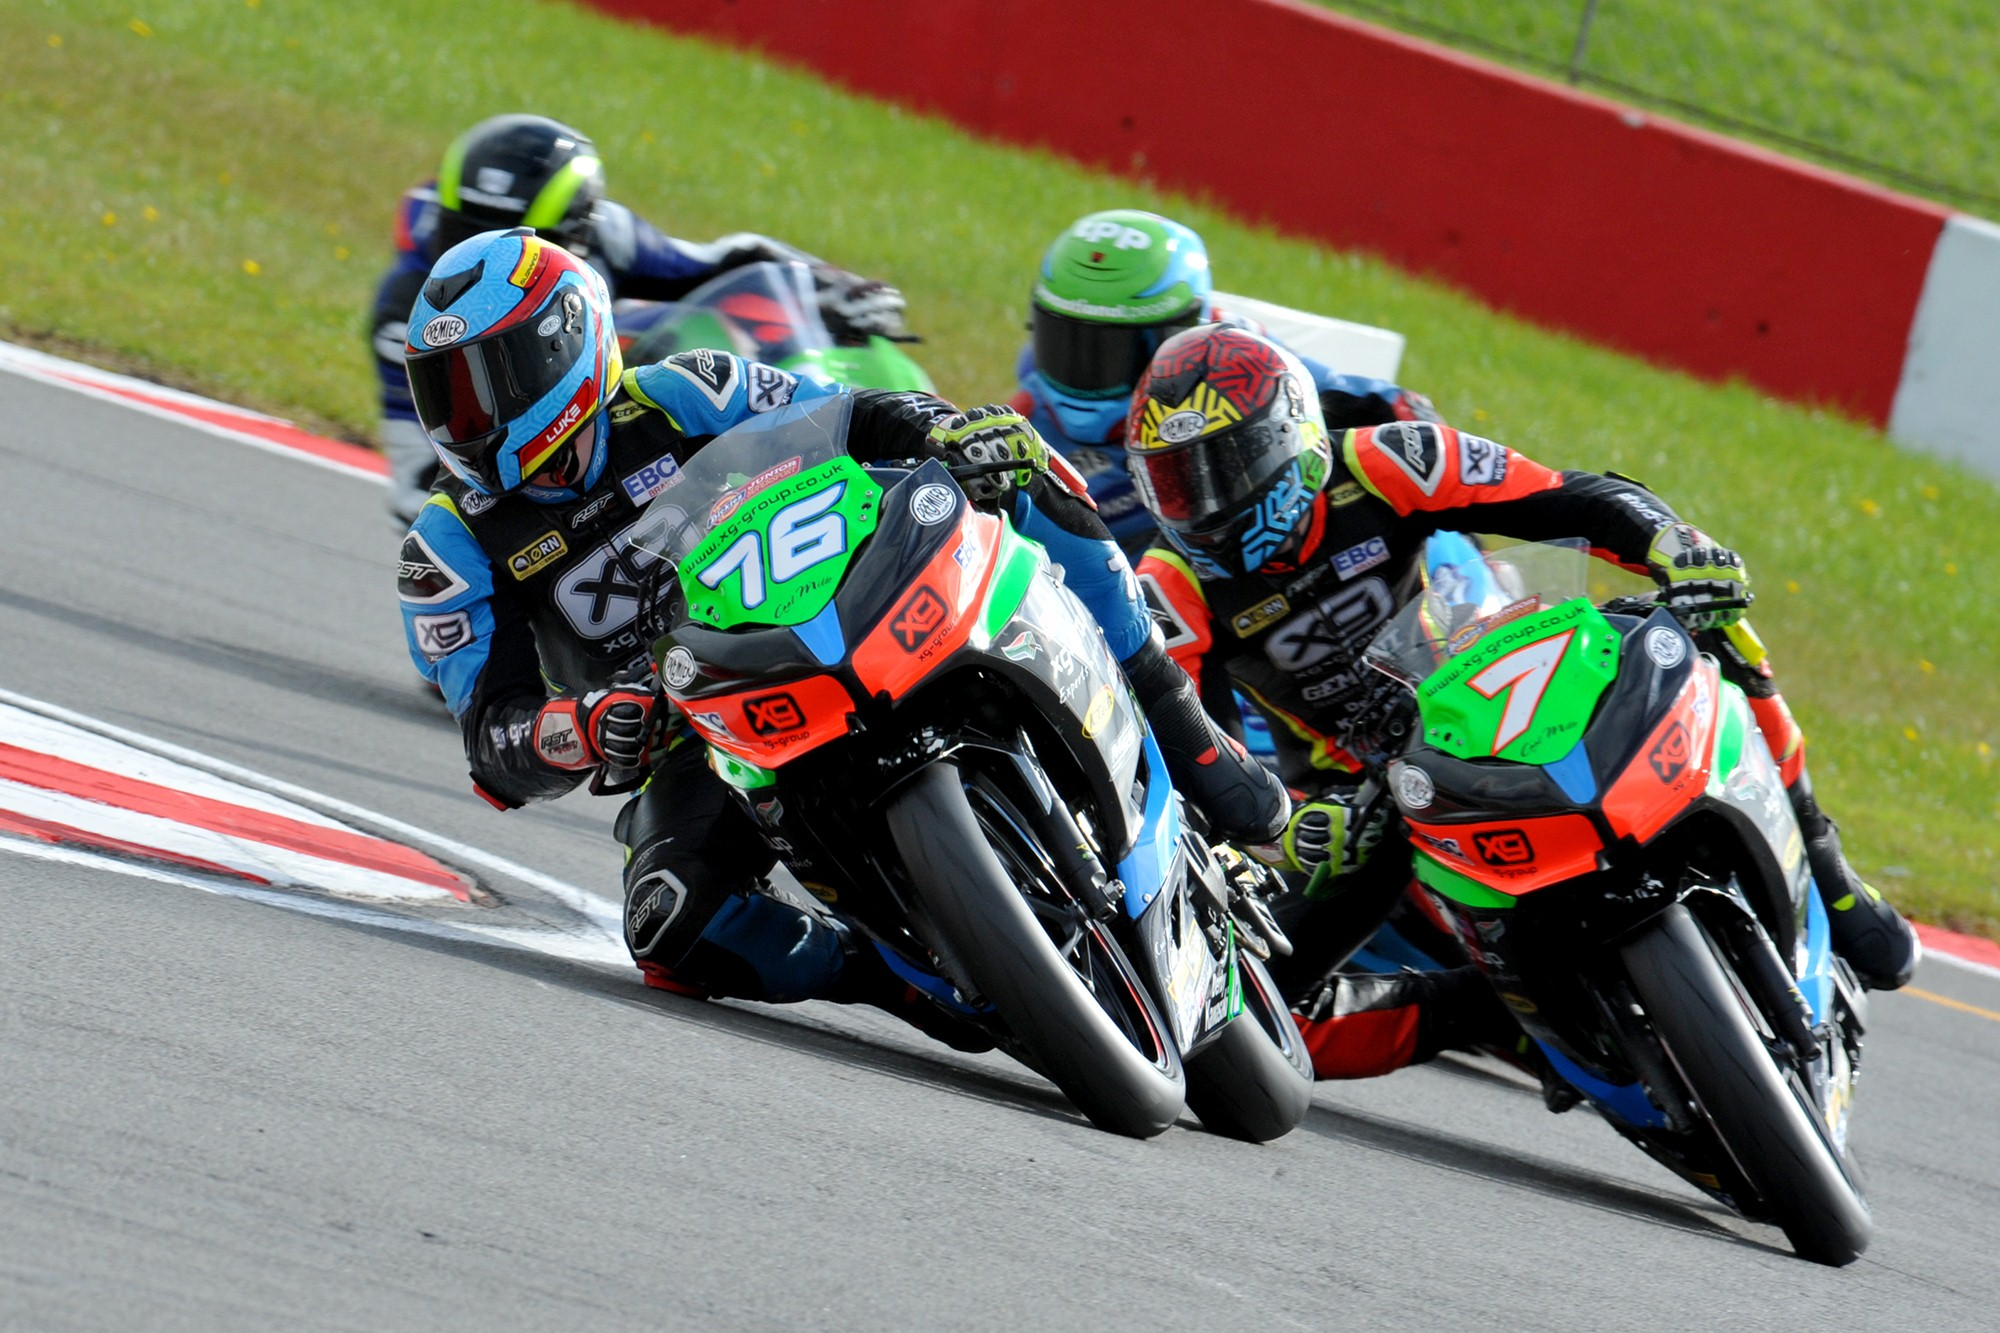 Luke Verwey qualifies in pole position at Donington BSB